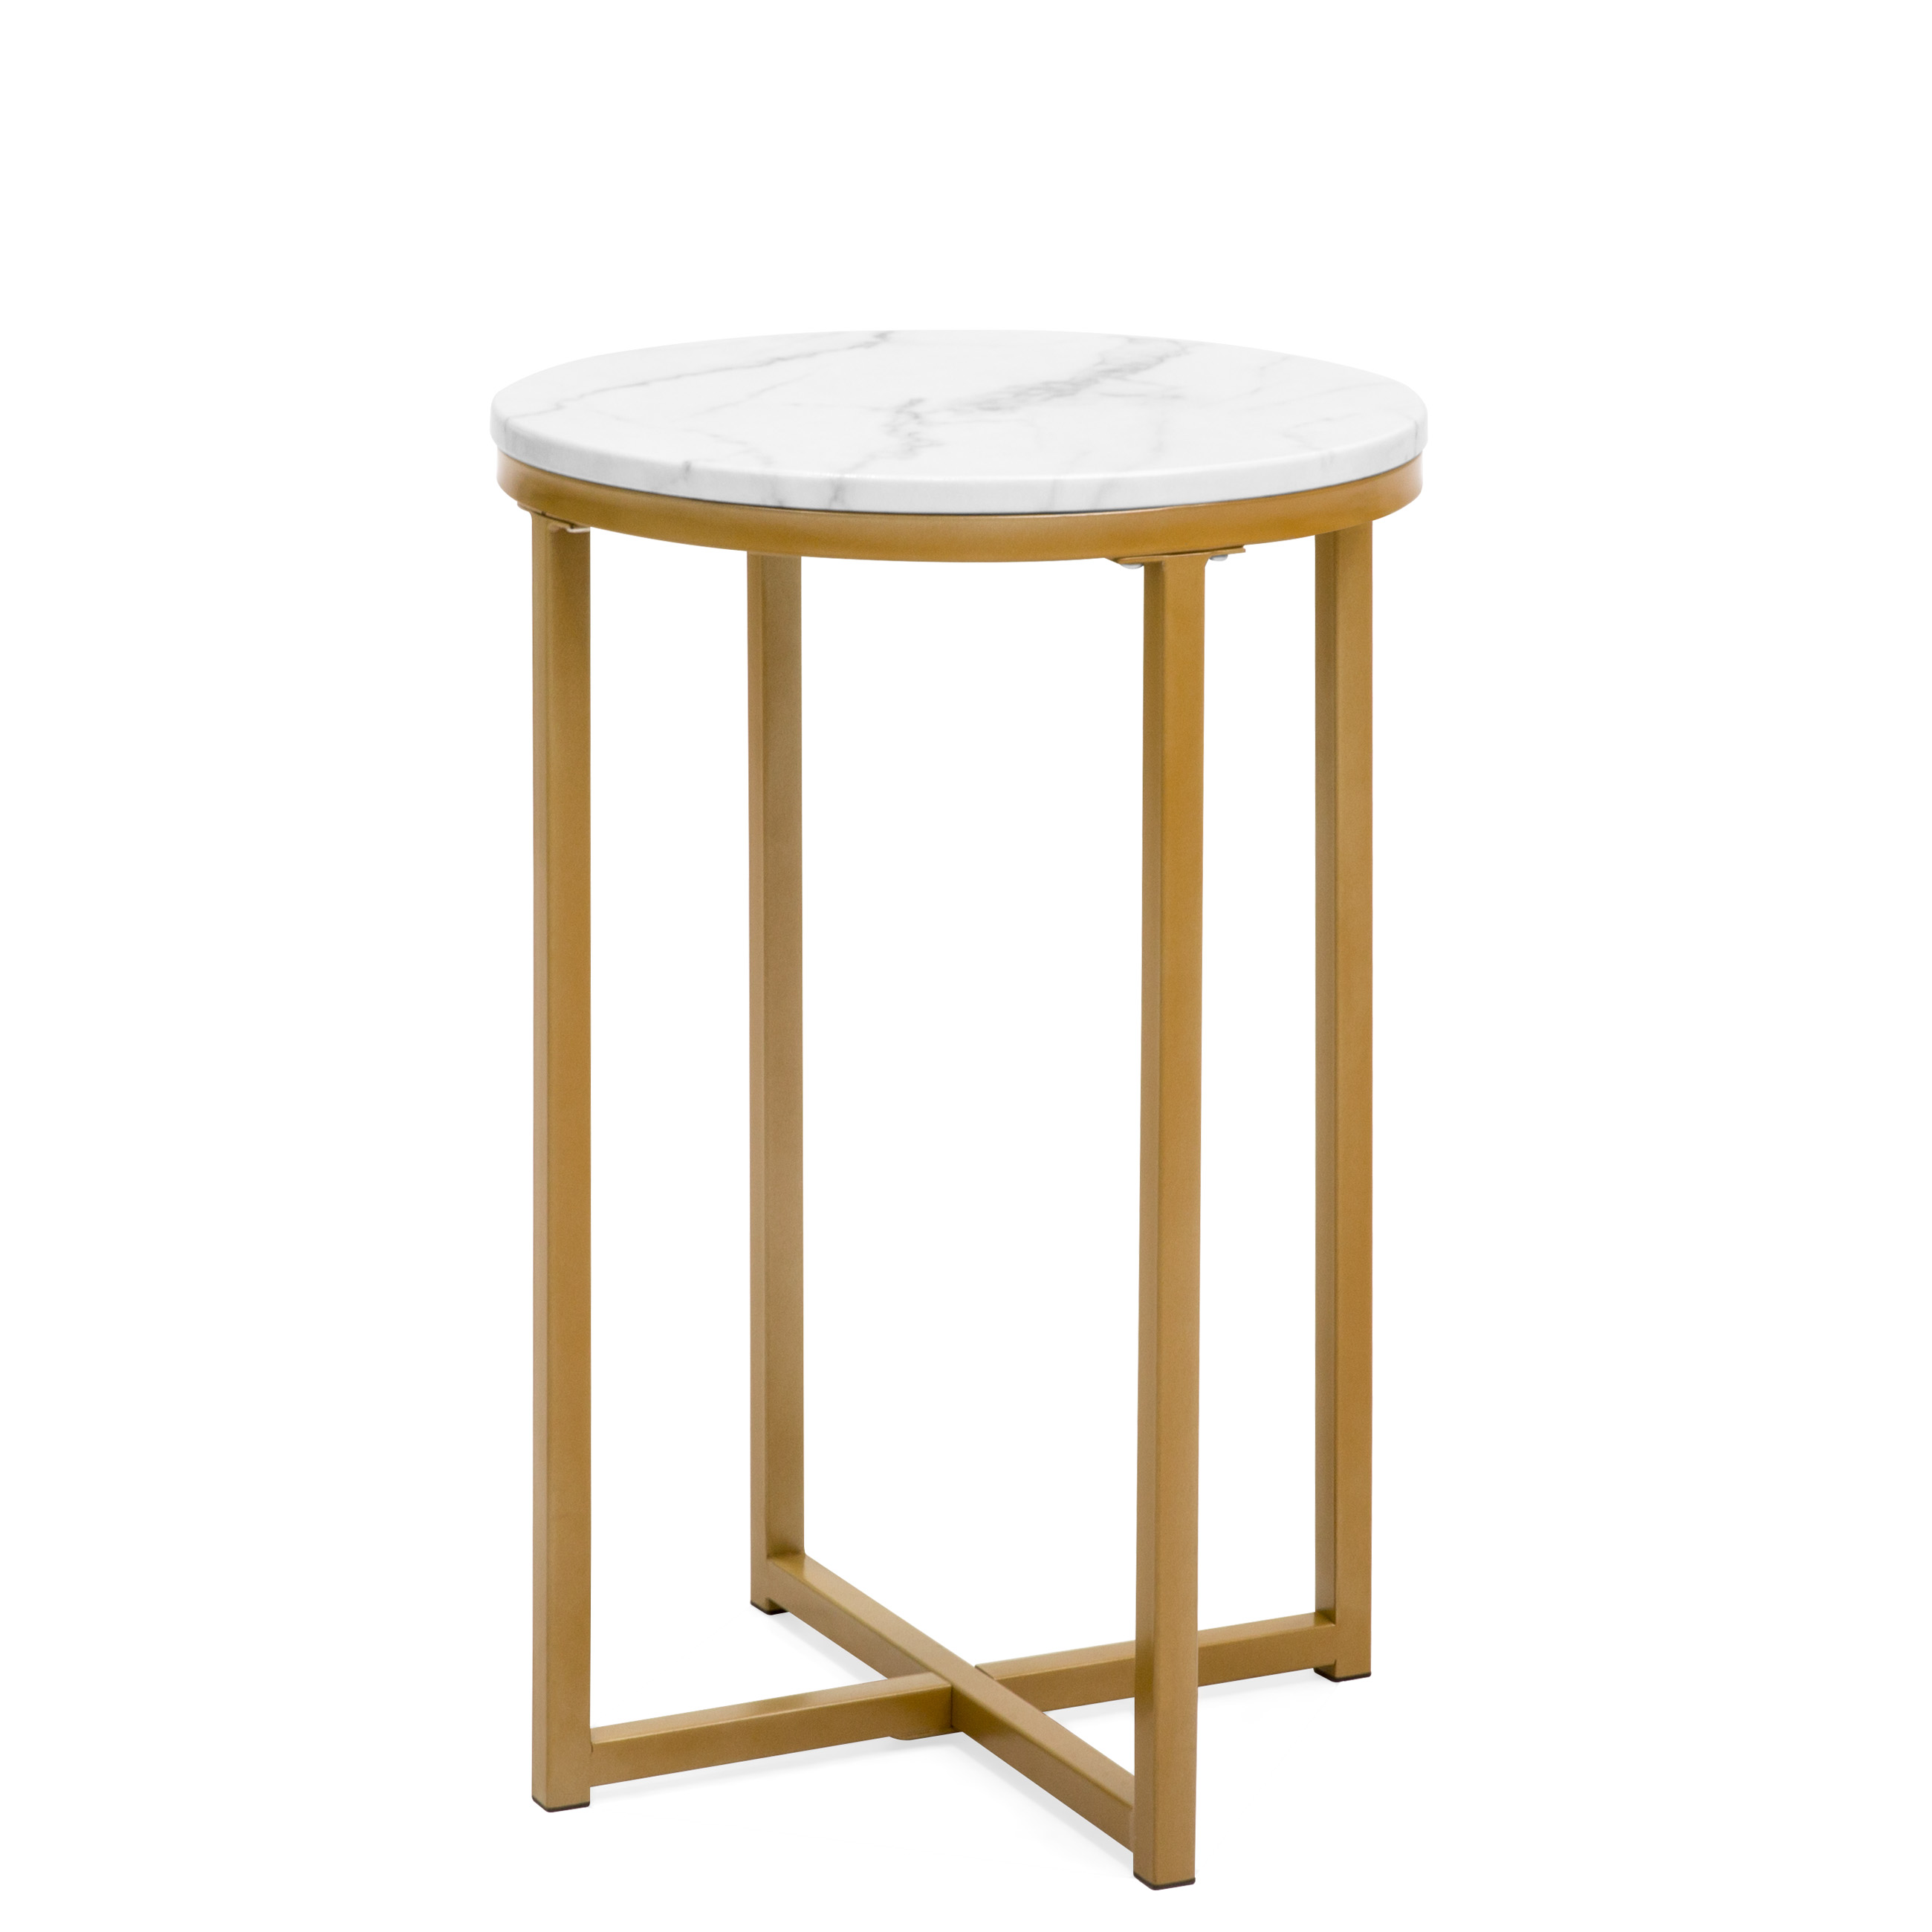 best choice products modern living room round side end accent white gold table coffee nightstand metal frame faux marble top fred meyer furniture carpet cover strip home computer